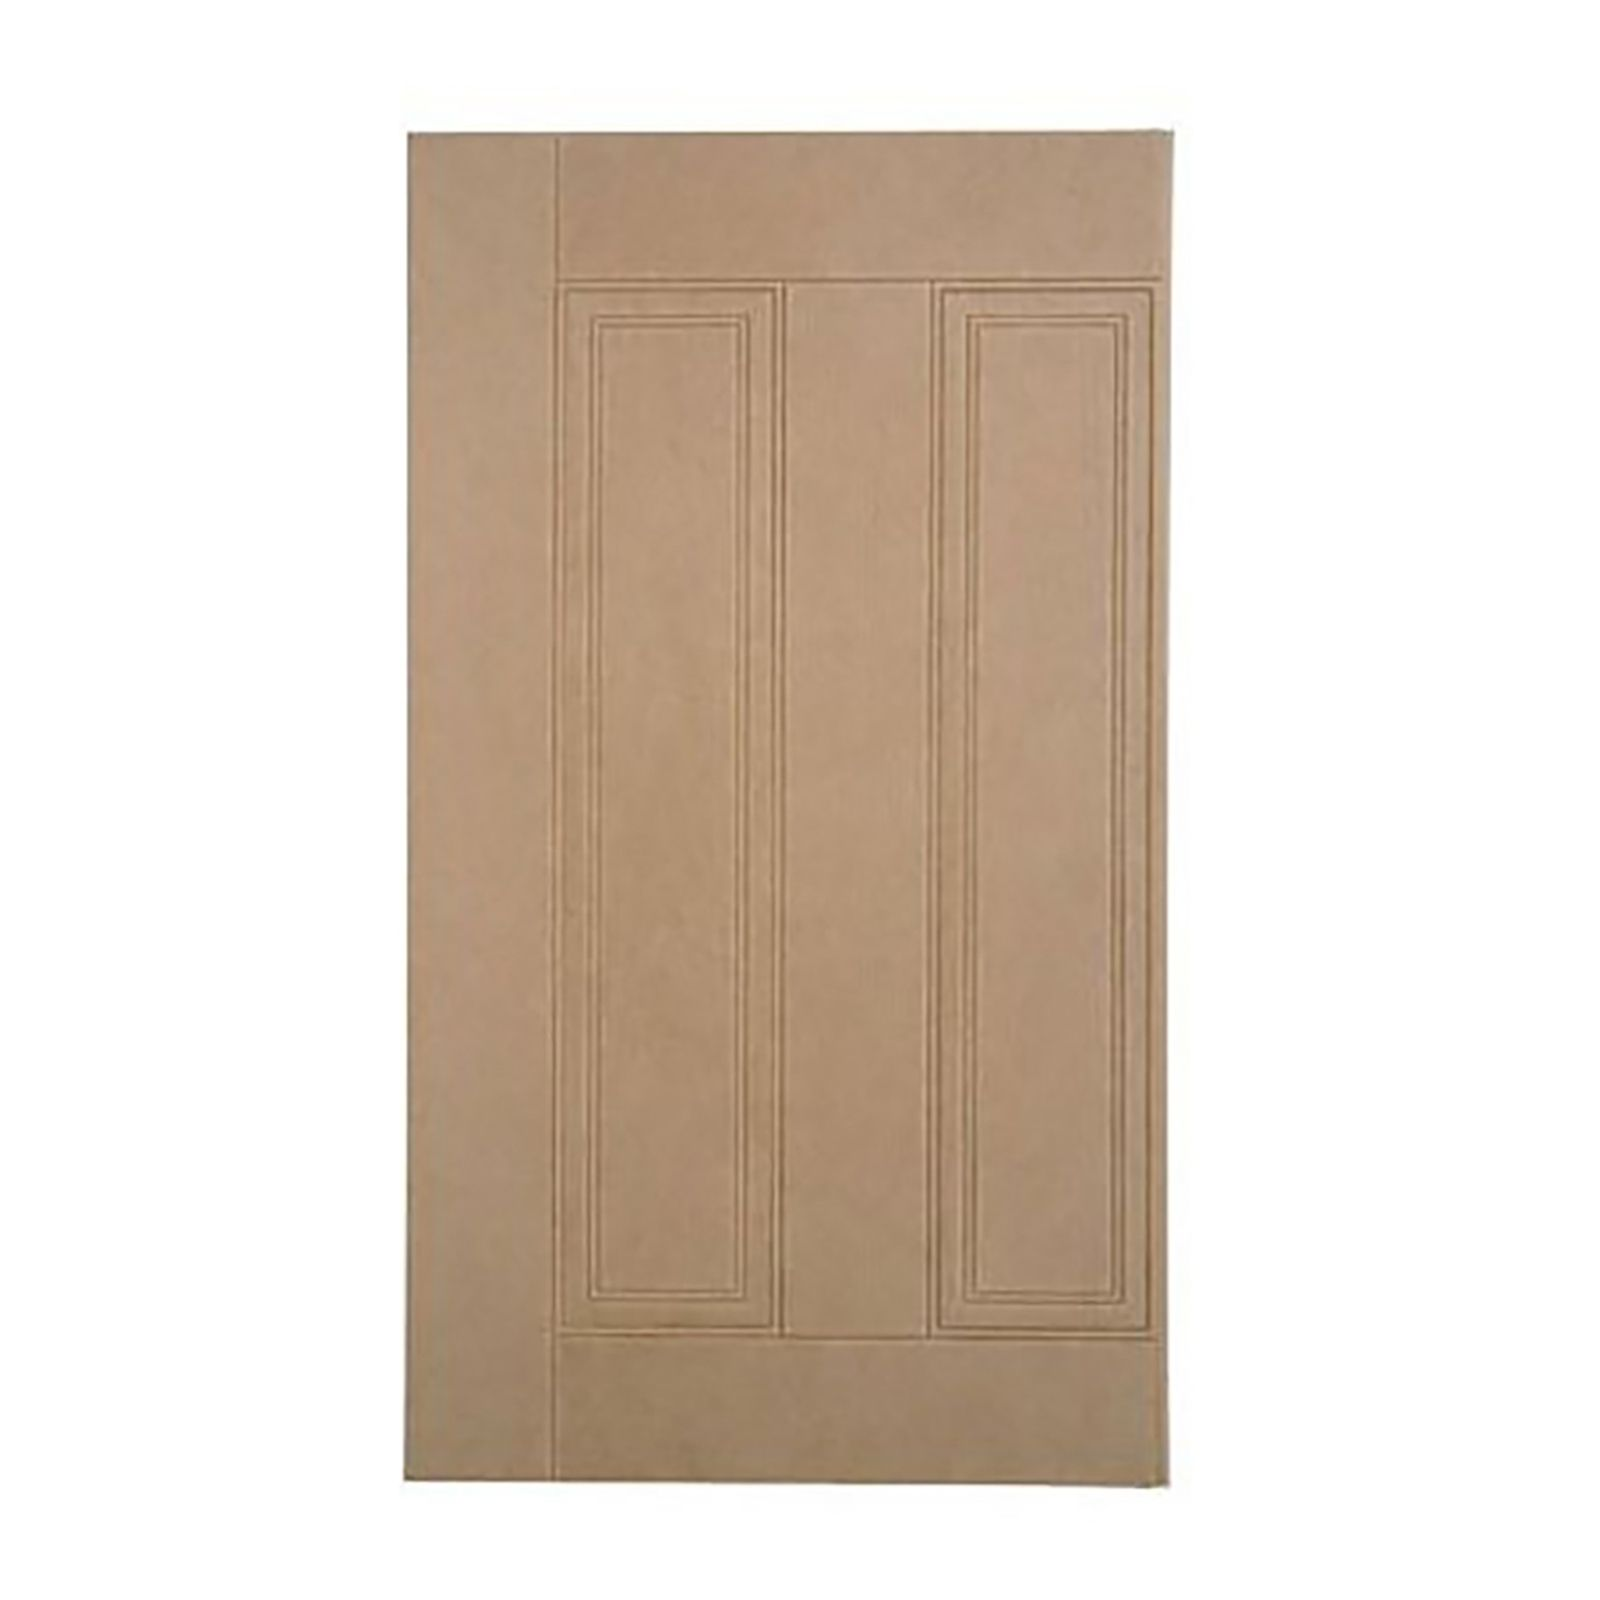 Easipanel Raised And Fielded Mdf Standard Wall Panel 915 X 516mm Bathroom Wall Panels